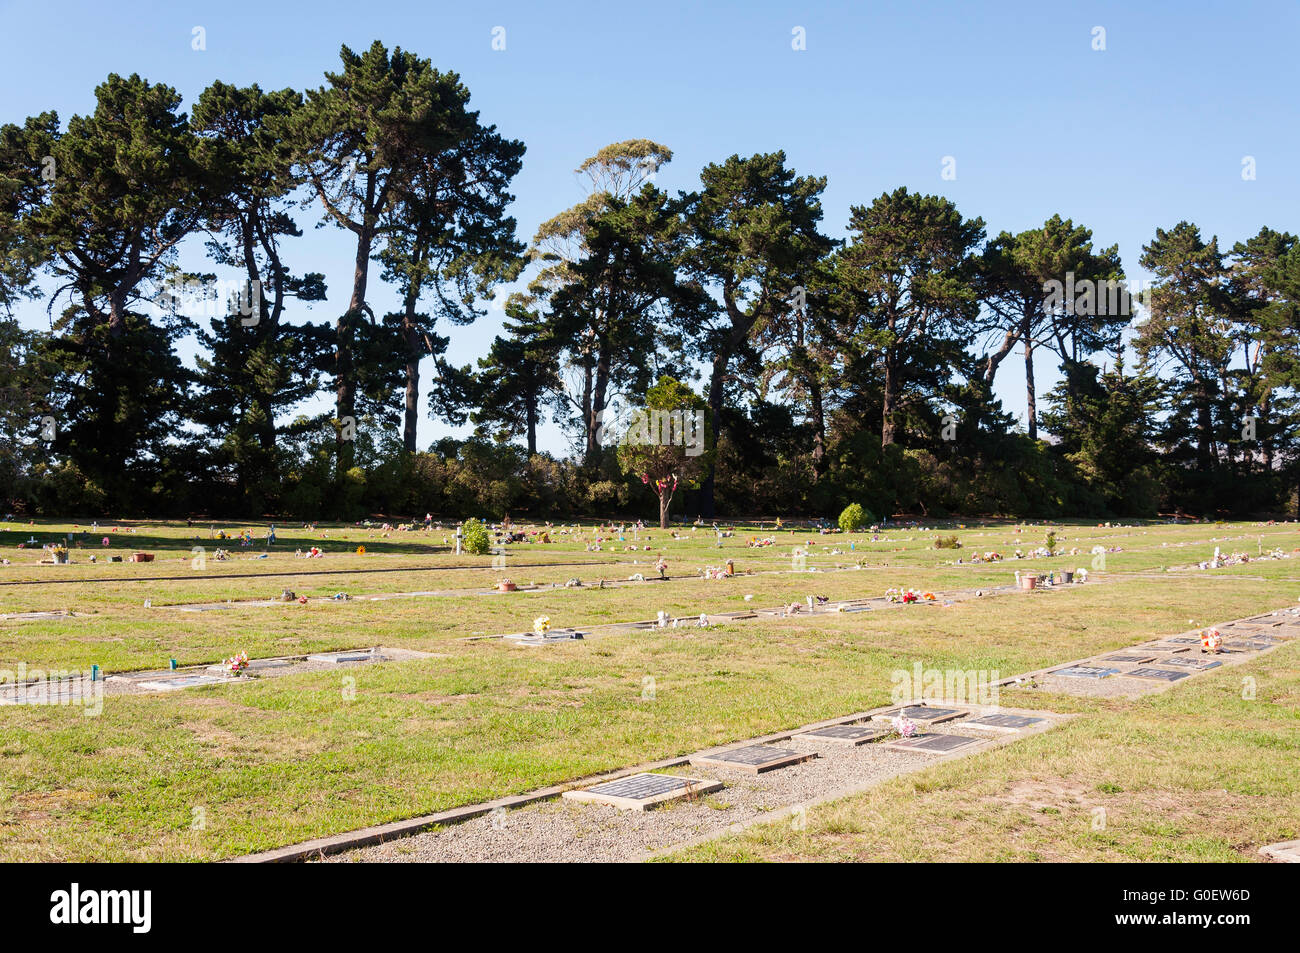 Graves at Ruru Lawn Cemetery, Ruru Road, Bromley, Christchurch, Canterbury, New Zealand - Stock Image